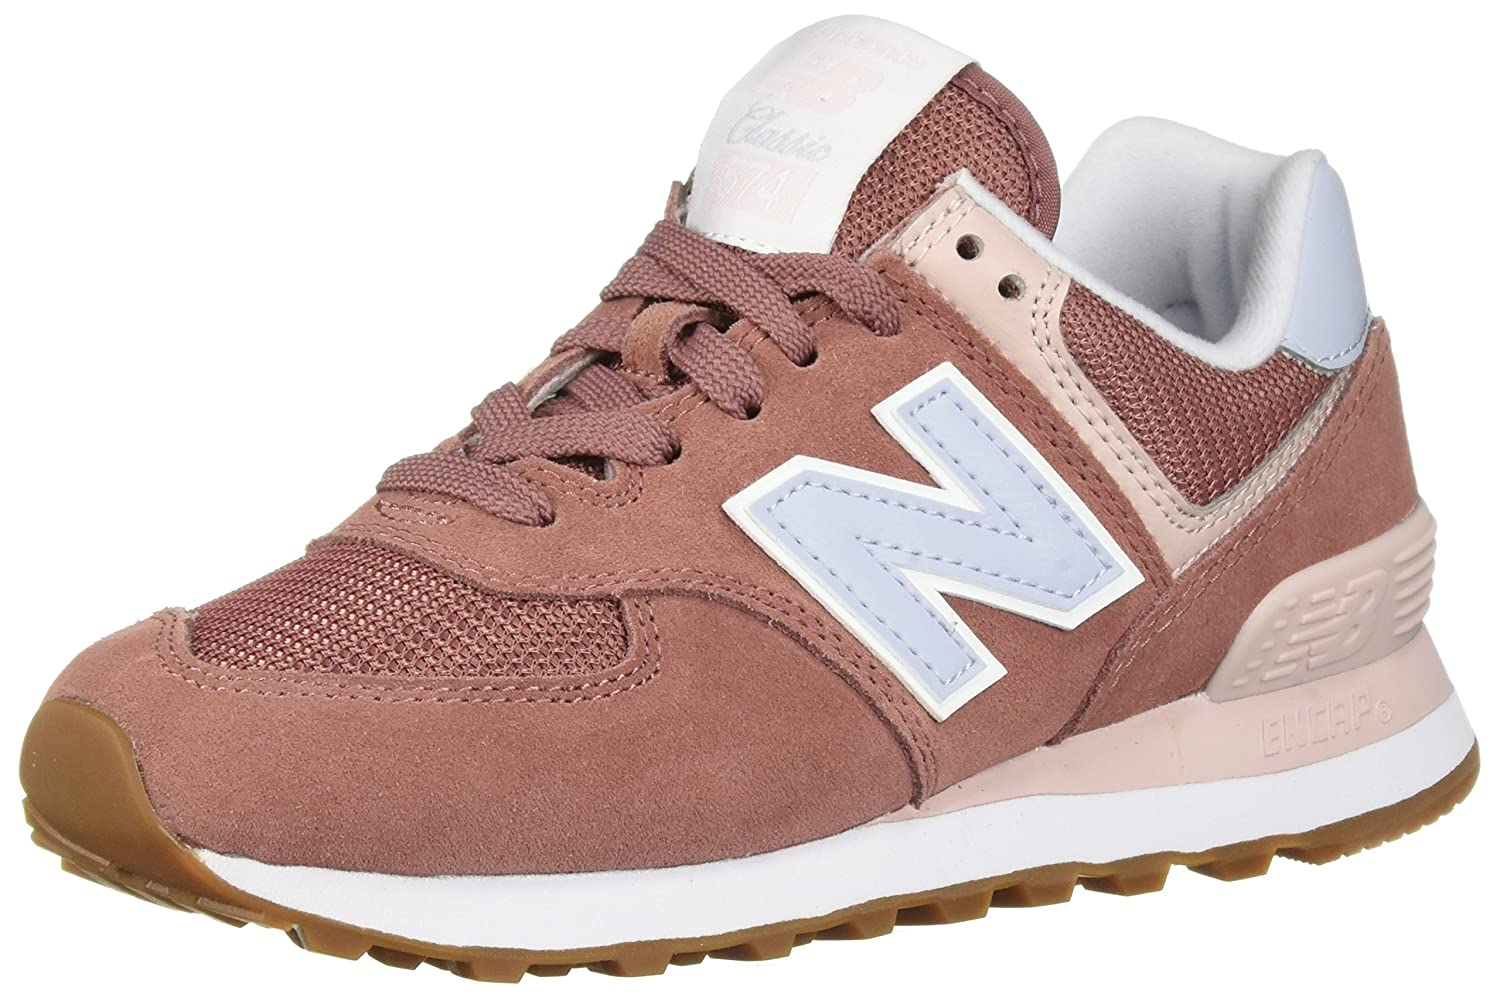 New Balance Wl574, Bottes 19998 Classiques Femme Orange Vapor/Conch (Dark Wl574, Oxide/Blue Vapor/Conch Shell Fld) a6d3843 - epictionpvp.space